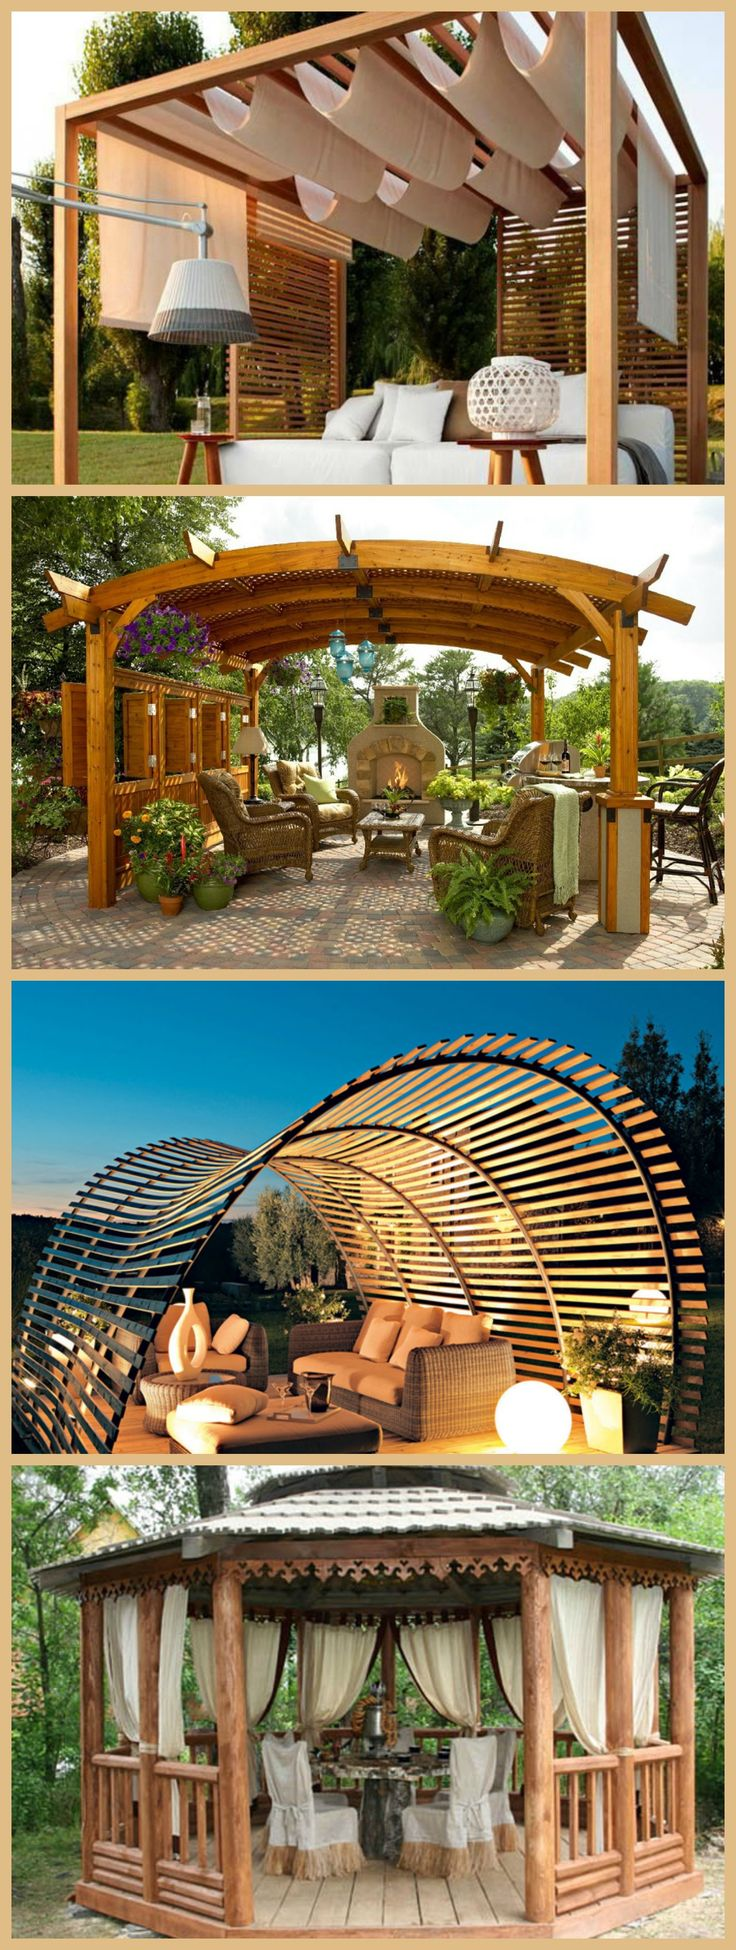 Custom trellis to match pergola landscapes by earth design - Unique Designer Pergolas Http Decoholic Org 2015 03 30